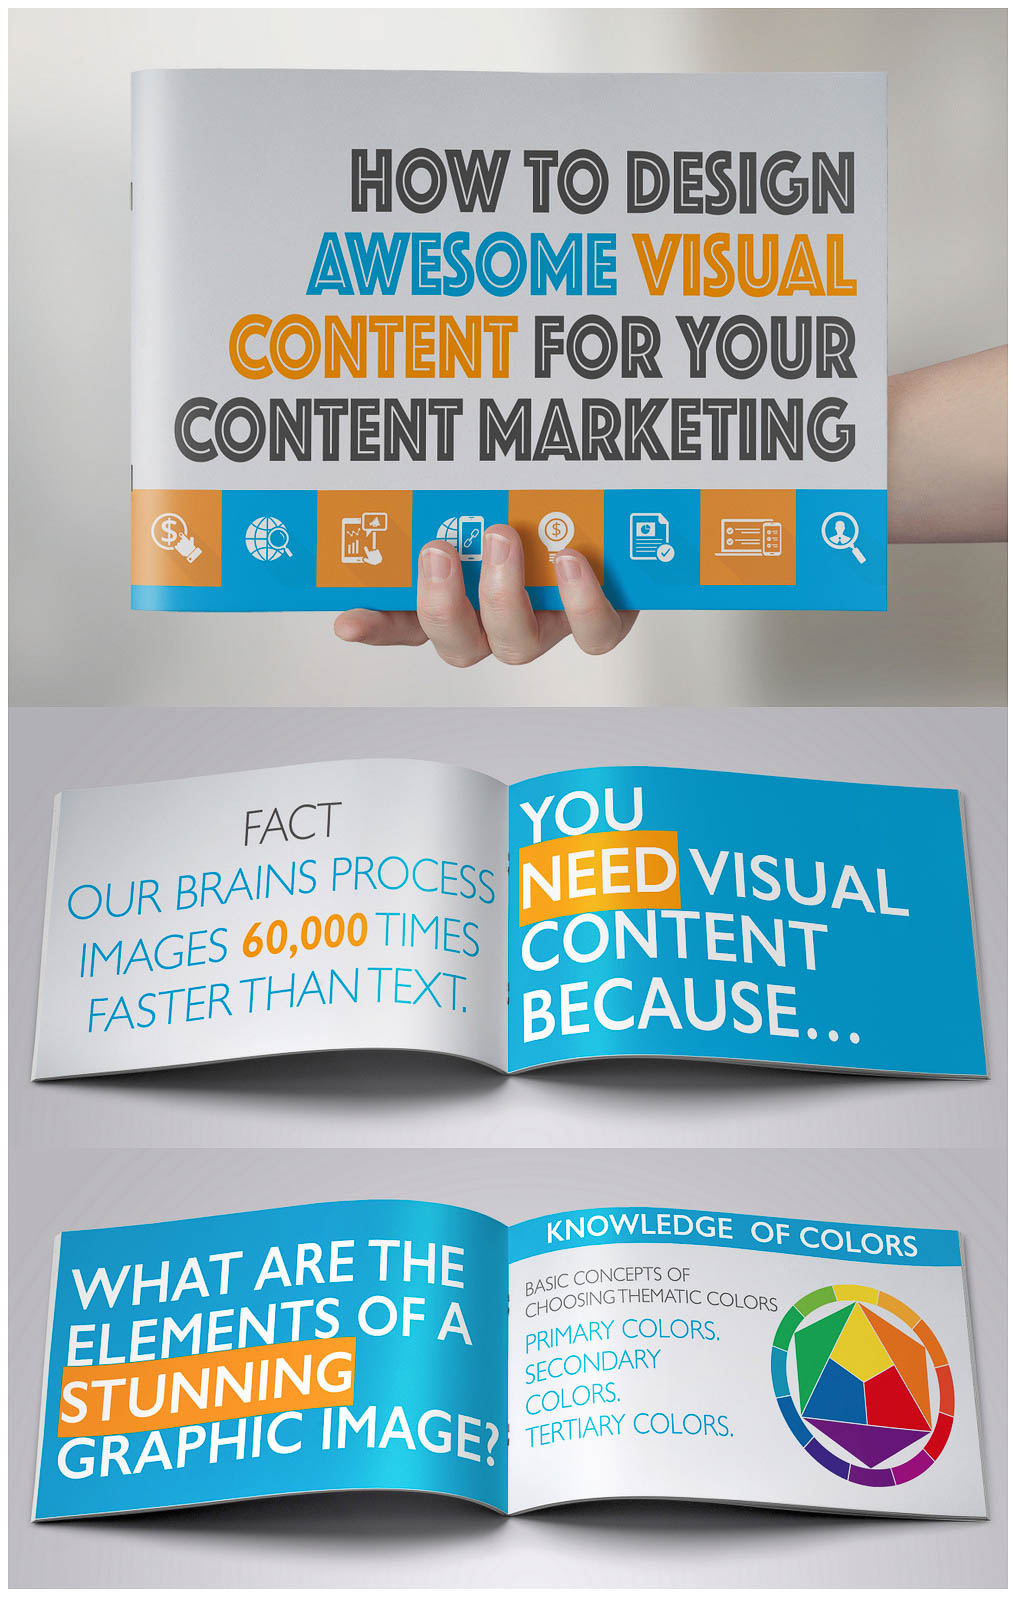 Concepro 21st Century Rules For Digital Marketing In Life